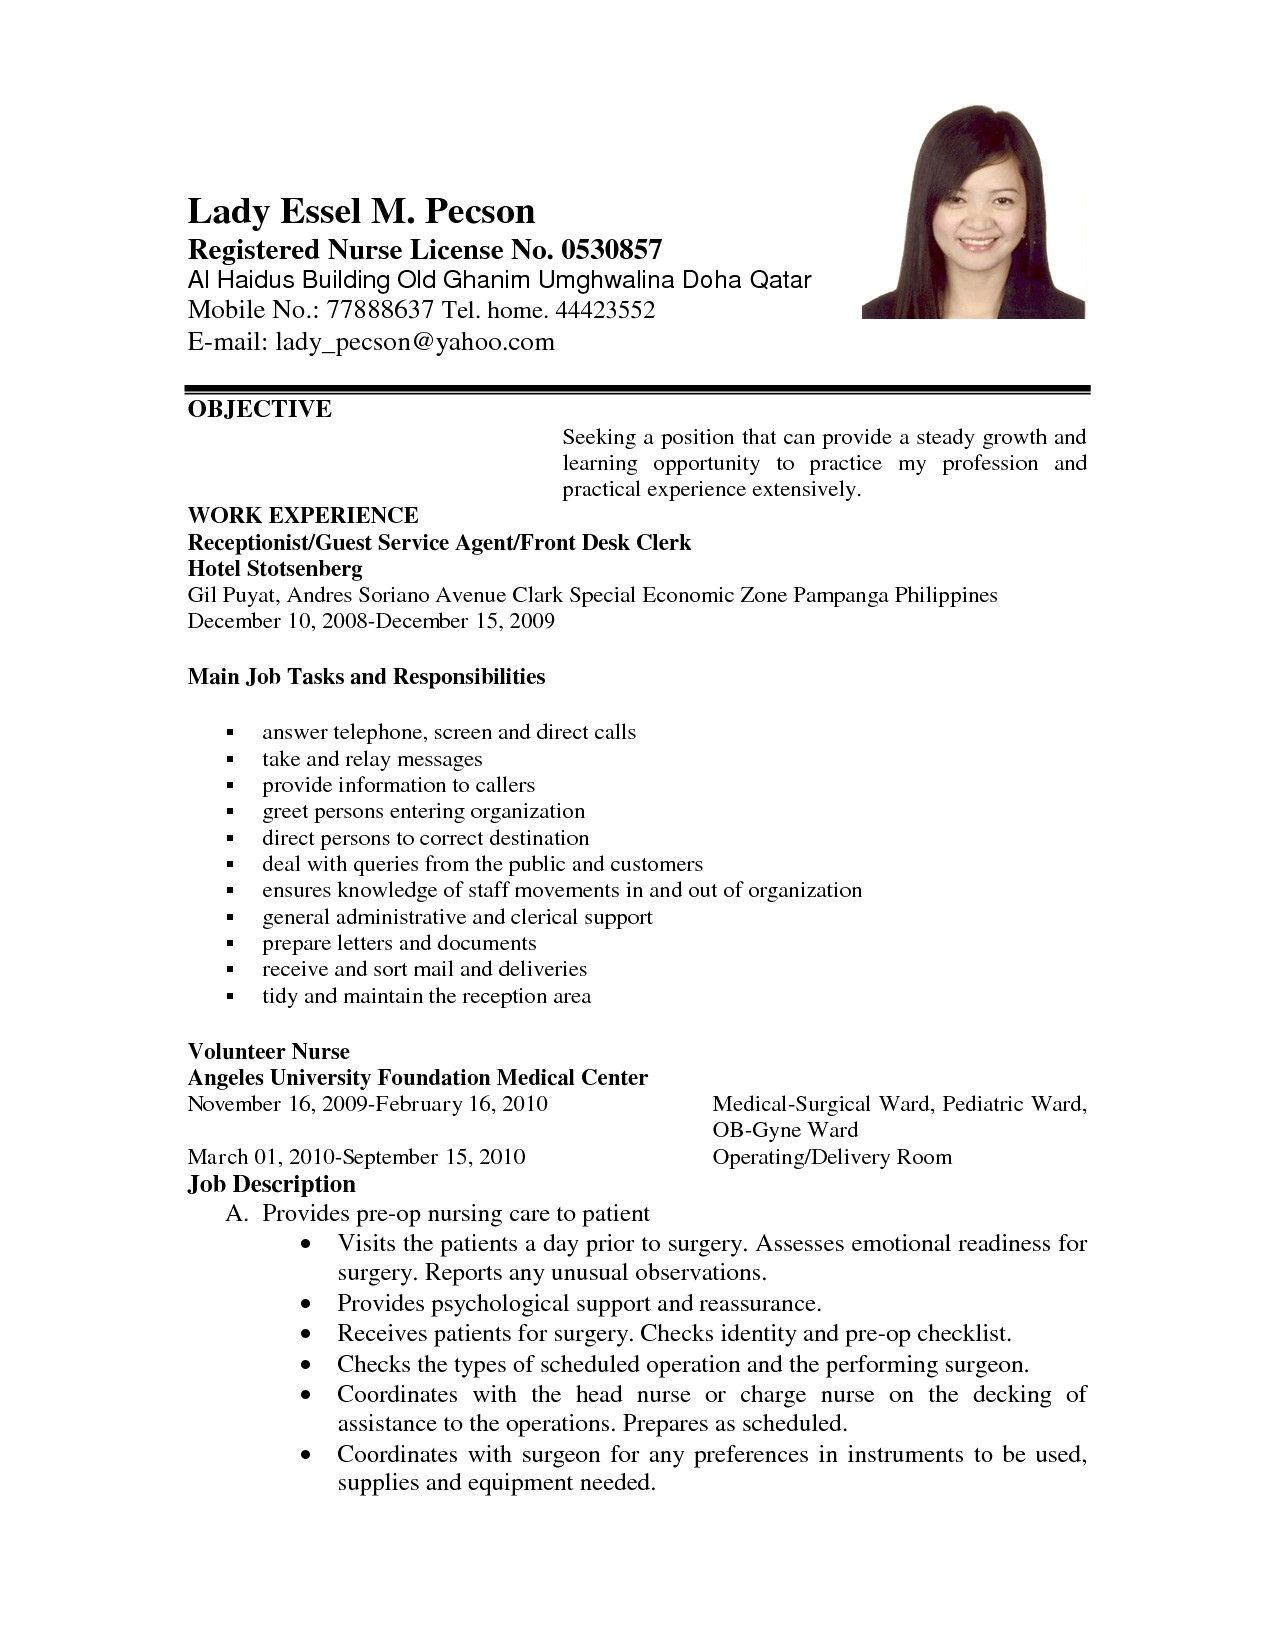 career objective resume examples awesome example applying for job of objectives cover Resume Resume Objective Examples For Service Crew